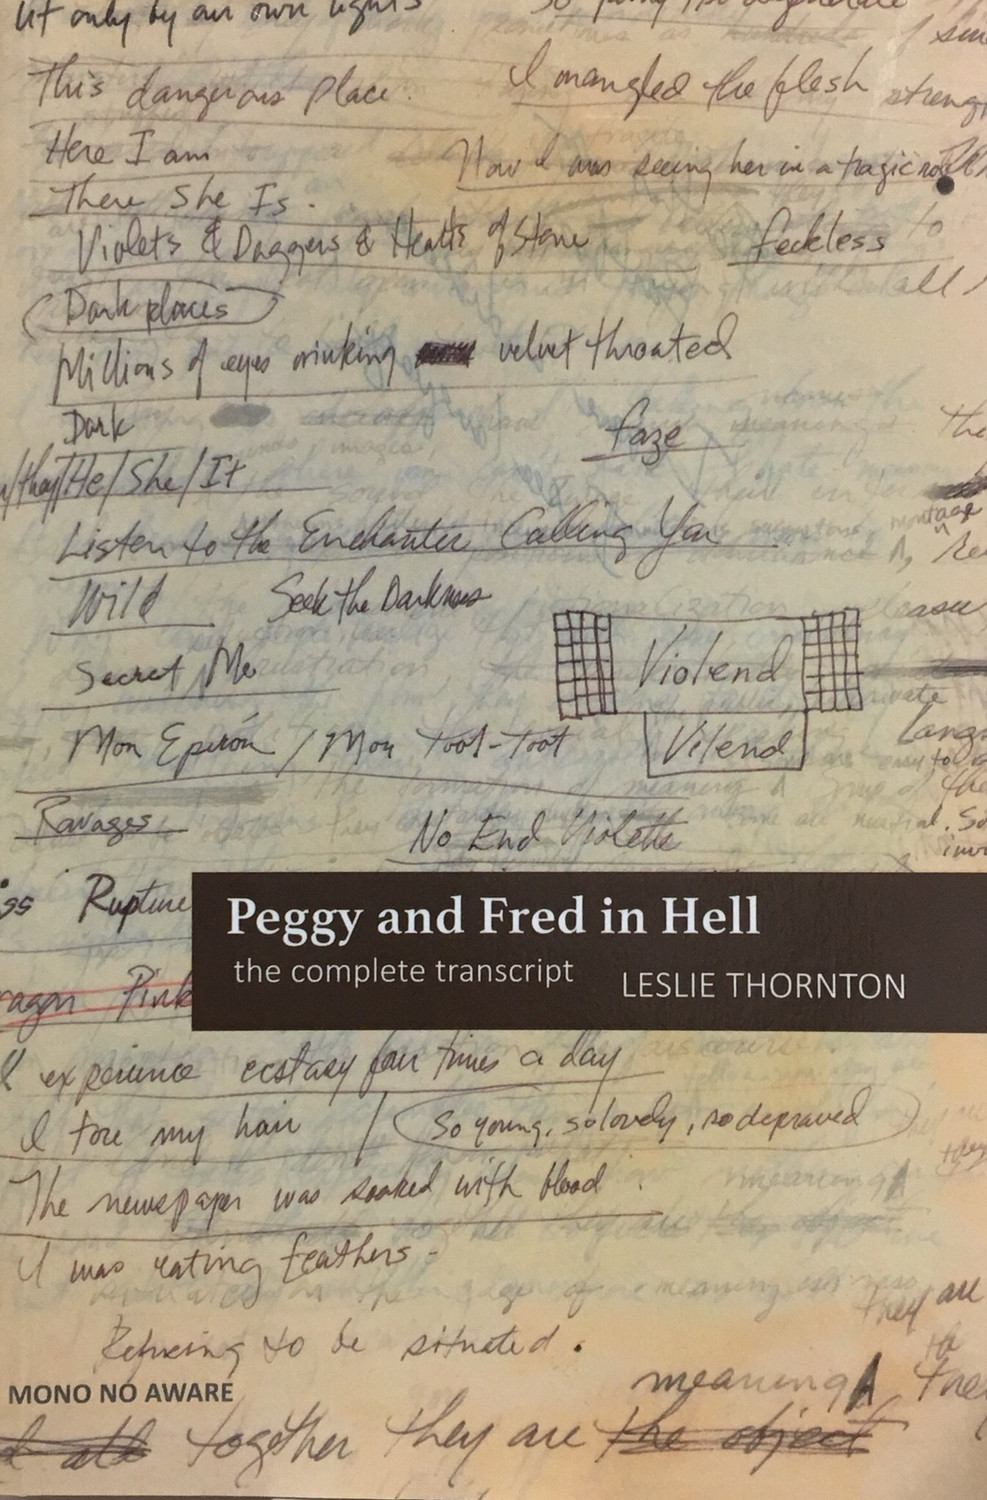 Leslie Thornton: Peggy and Fred in Hell (The Complete Transcript)